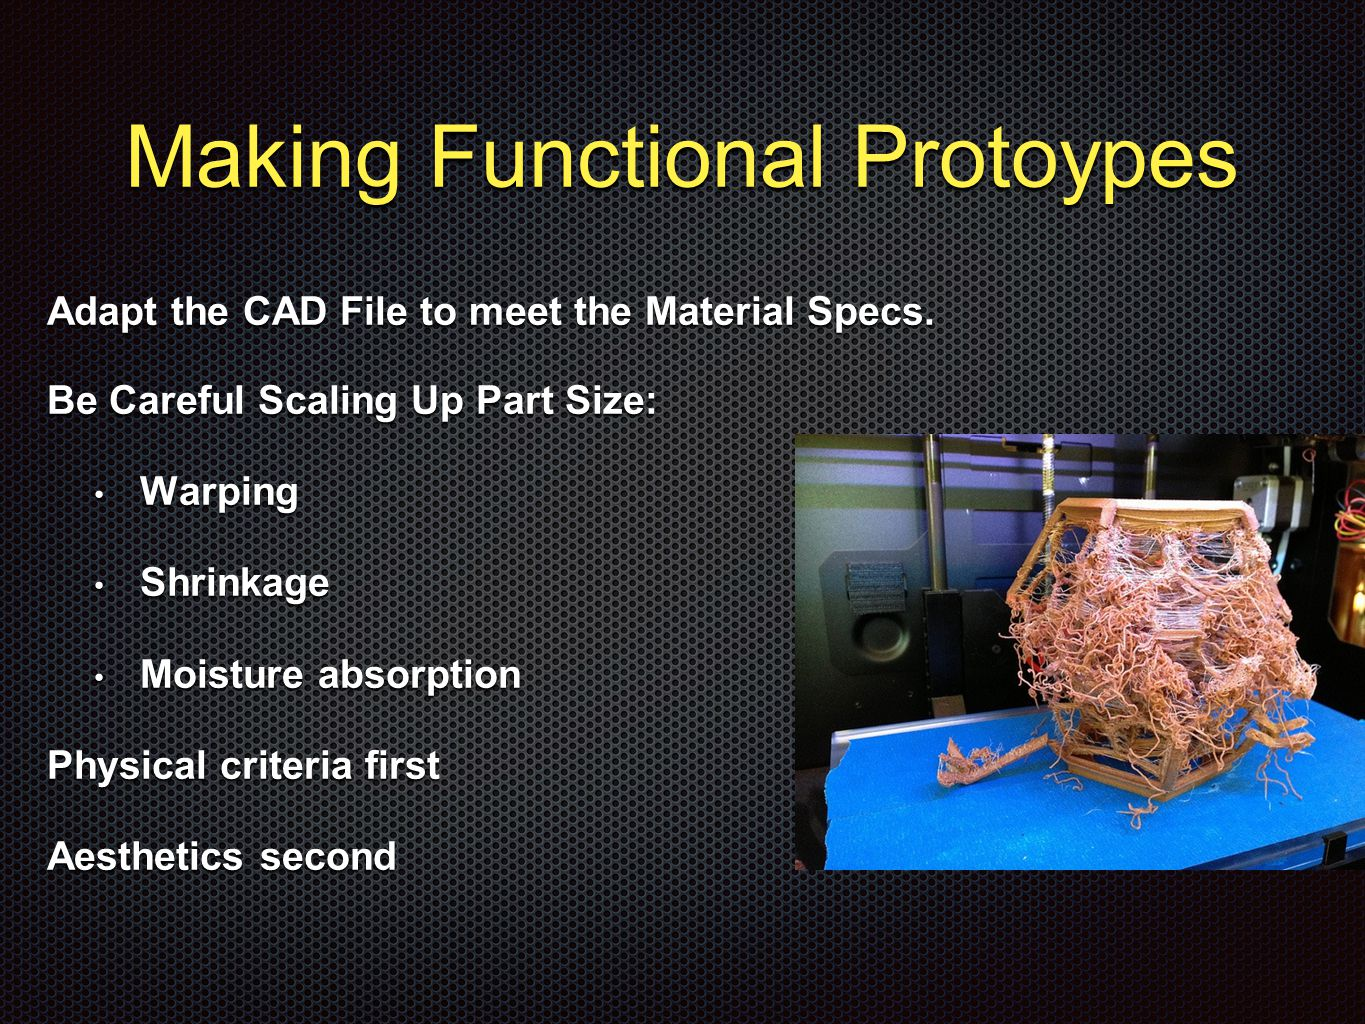 Making Functional Protoypes Adapt the CAD File to meet the Material Specs.